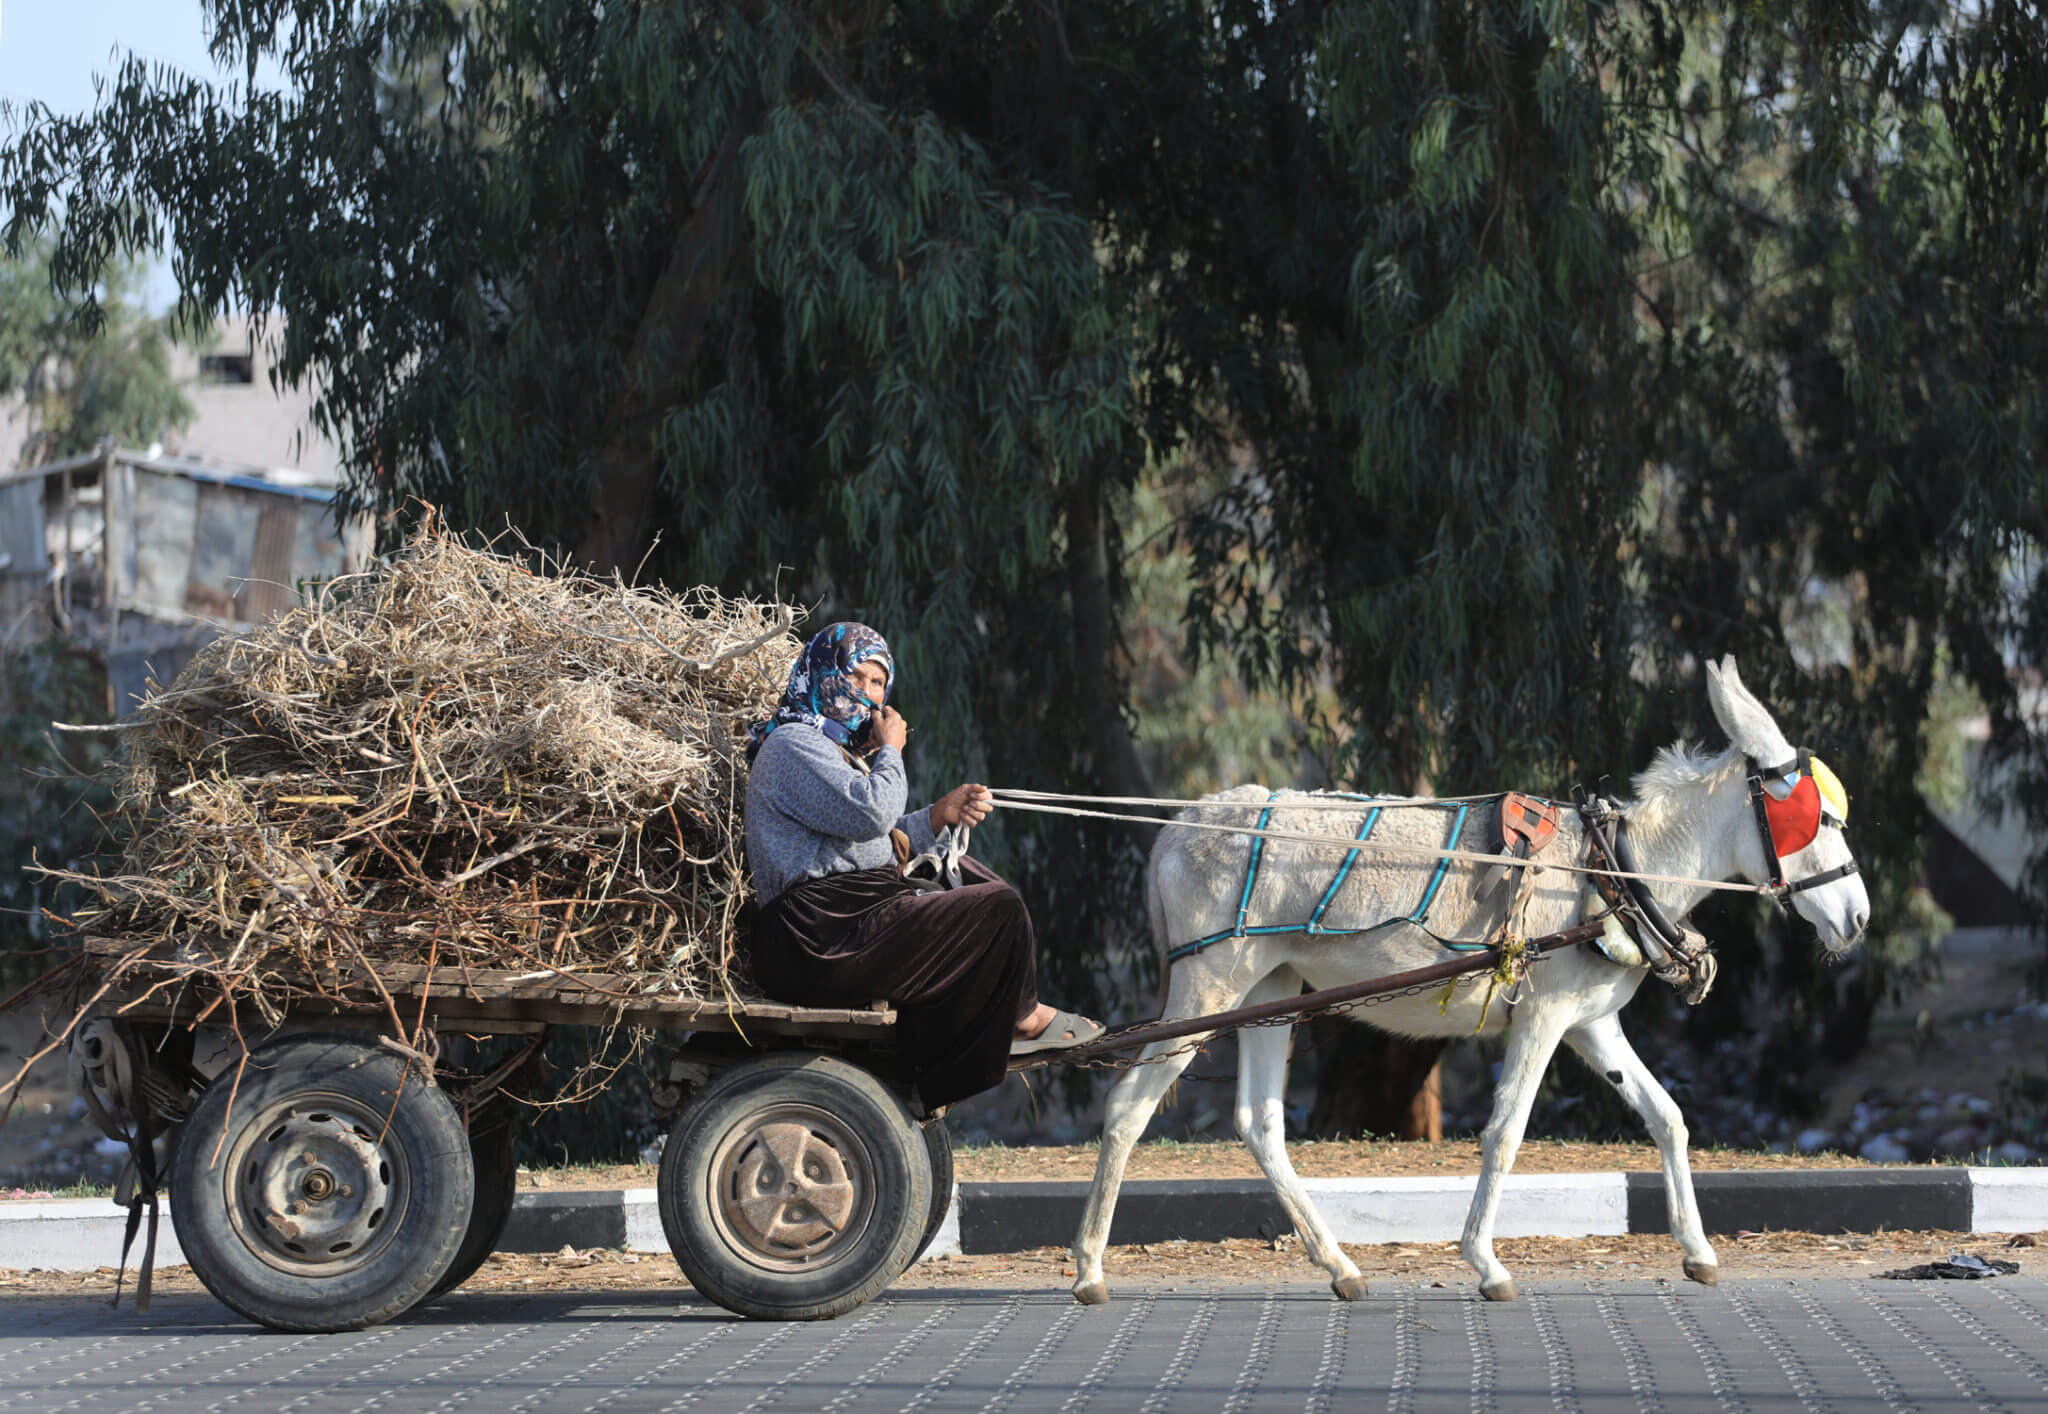 A Bedouin woman drives a donkey cart with extreme caution to collect firewood from agricultural areas, most of which are vulnerable to shelling.